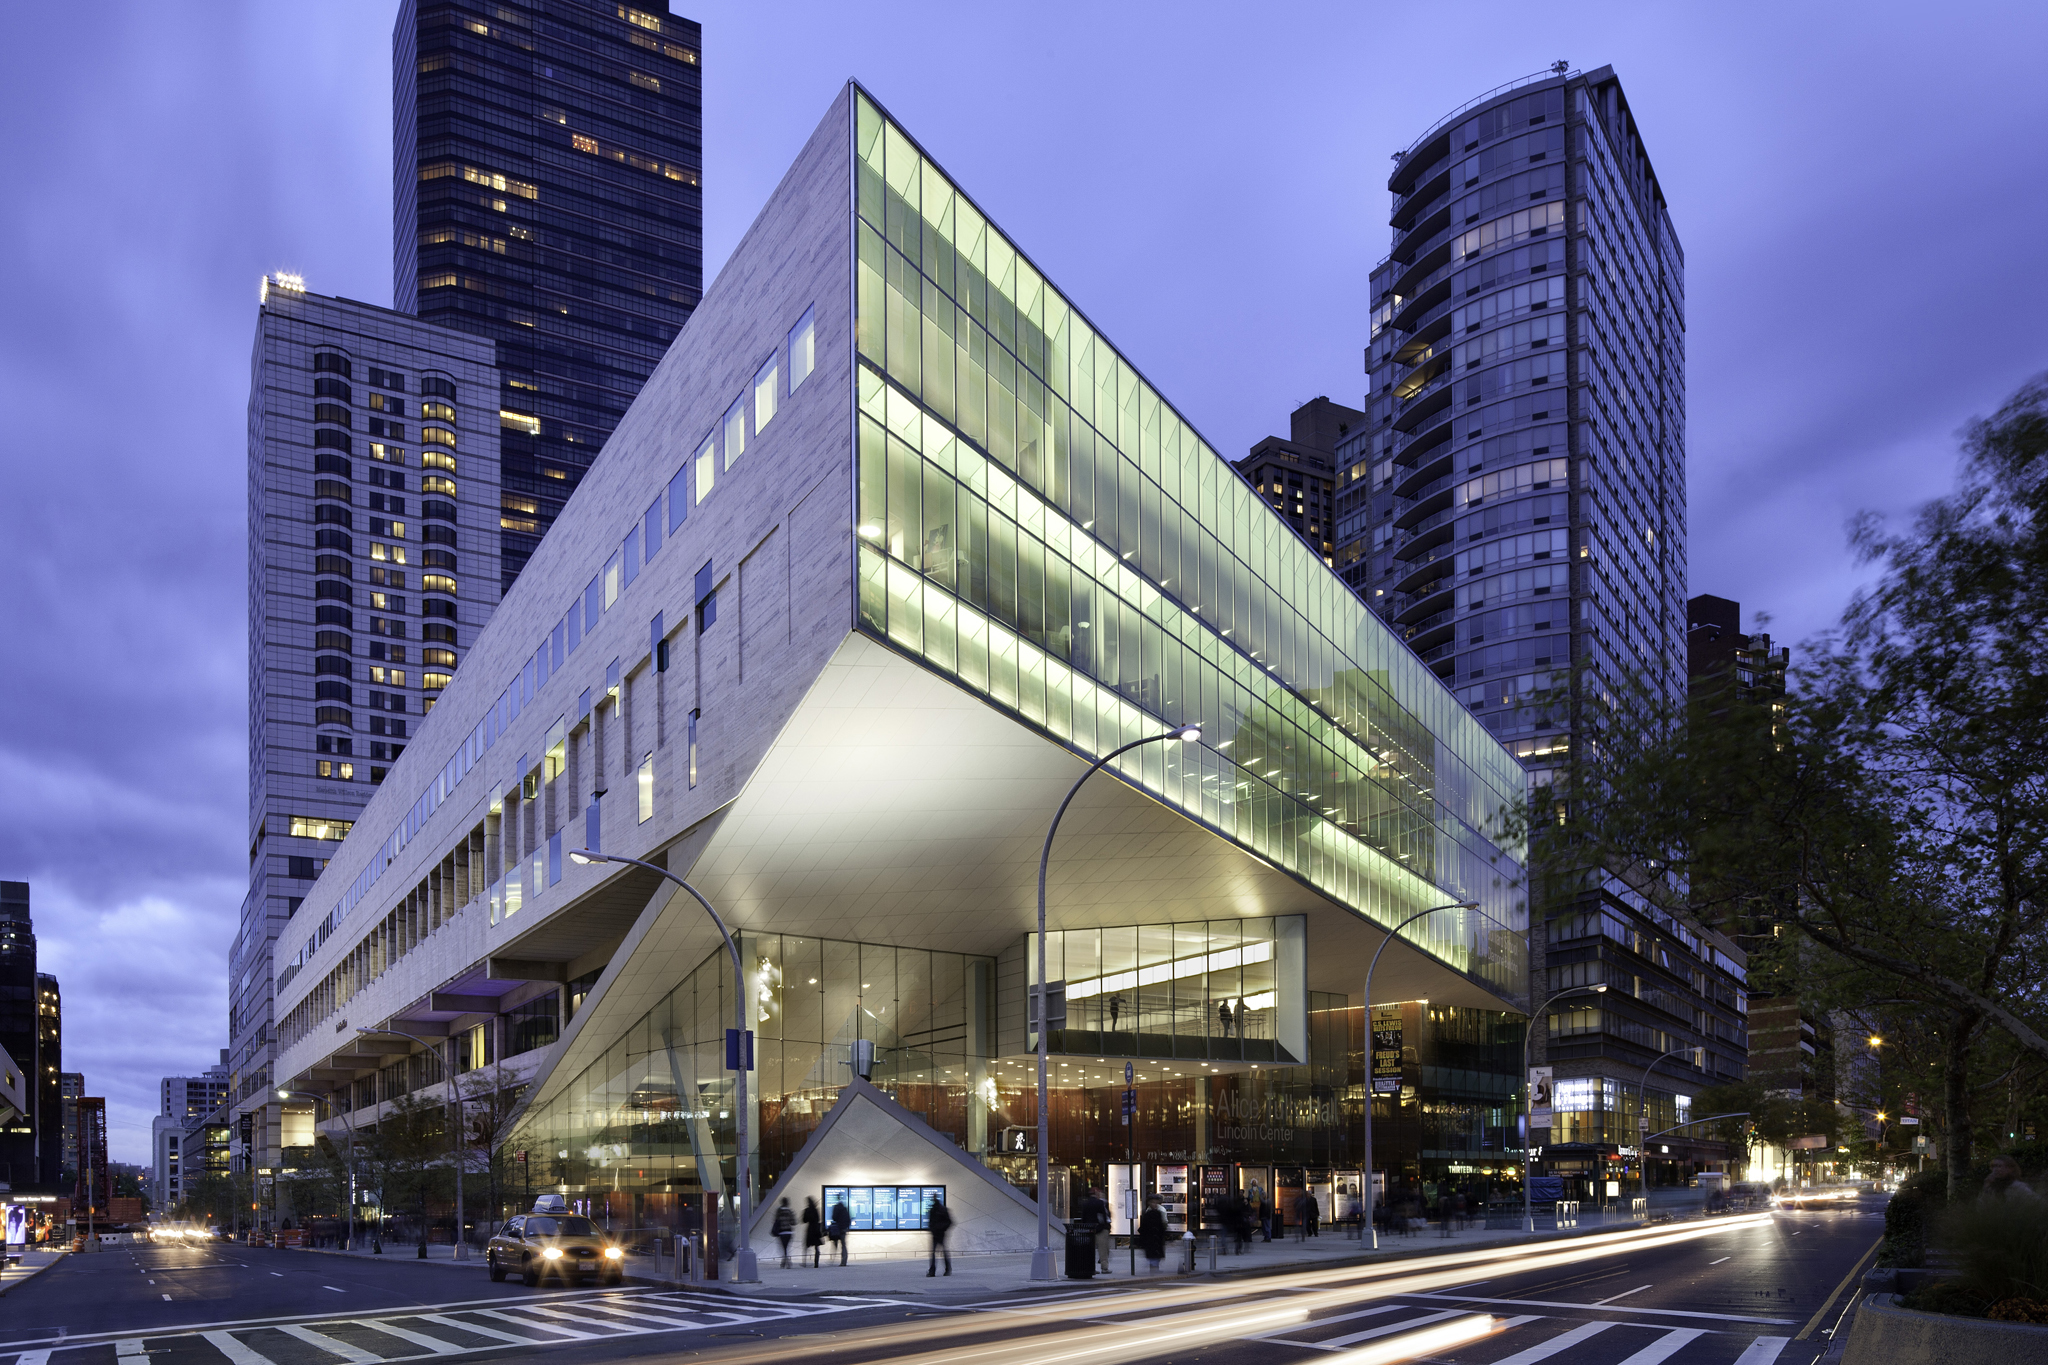 Juilliard School of Music